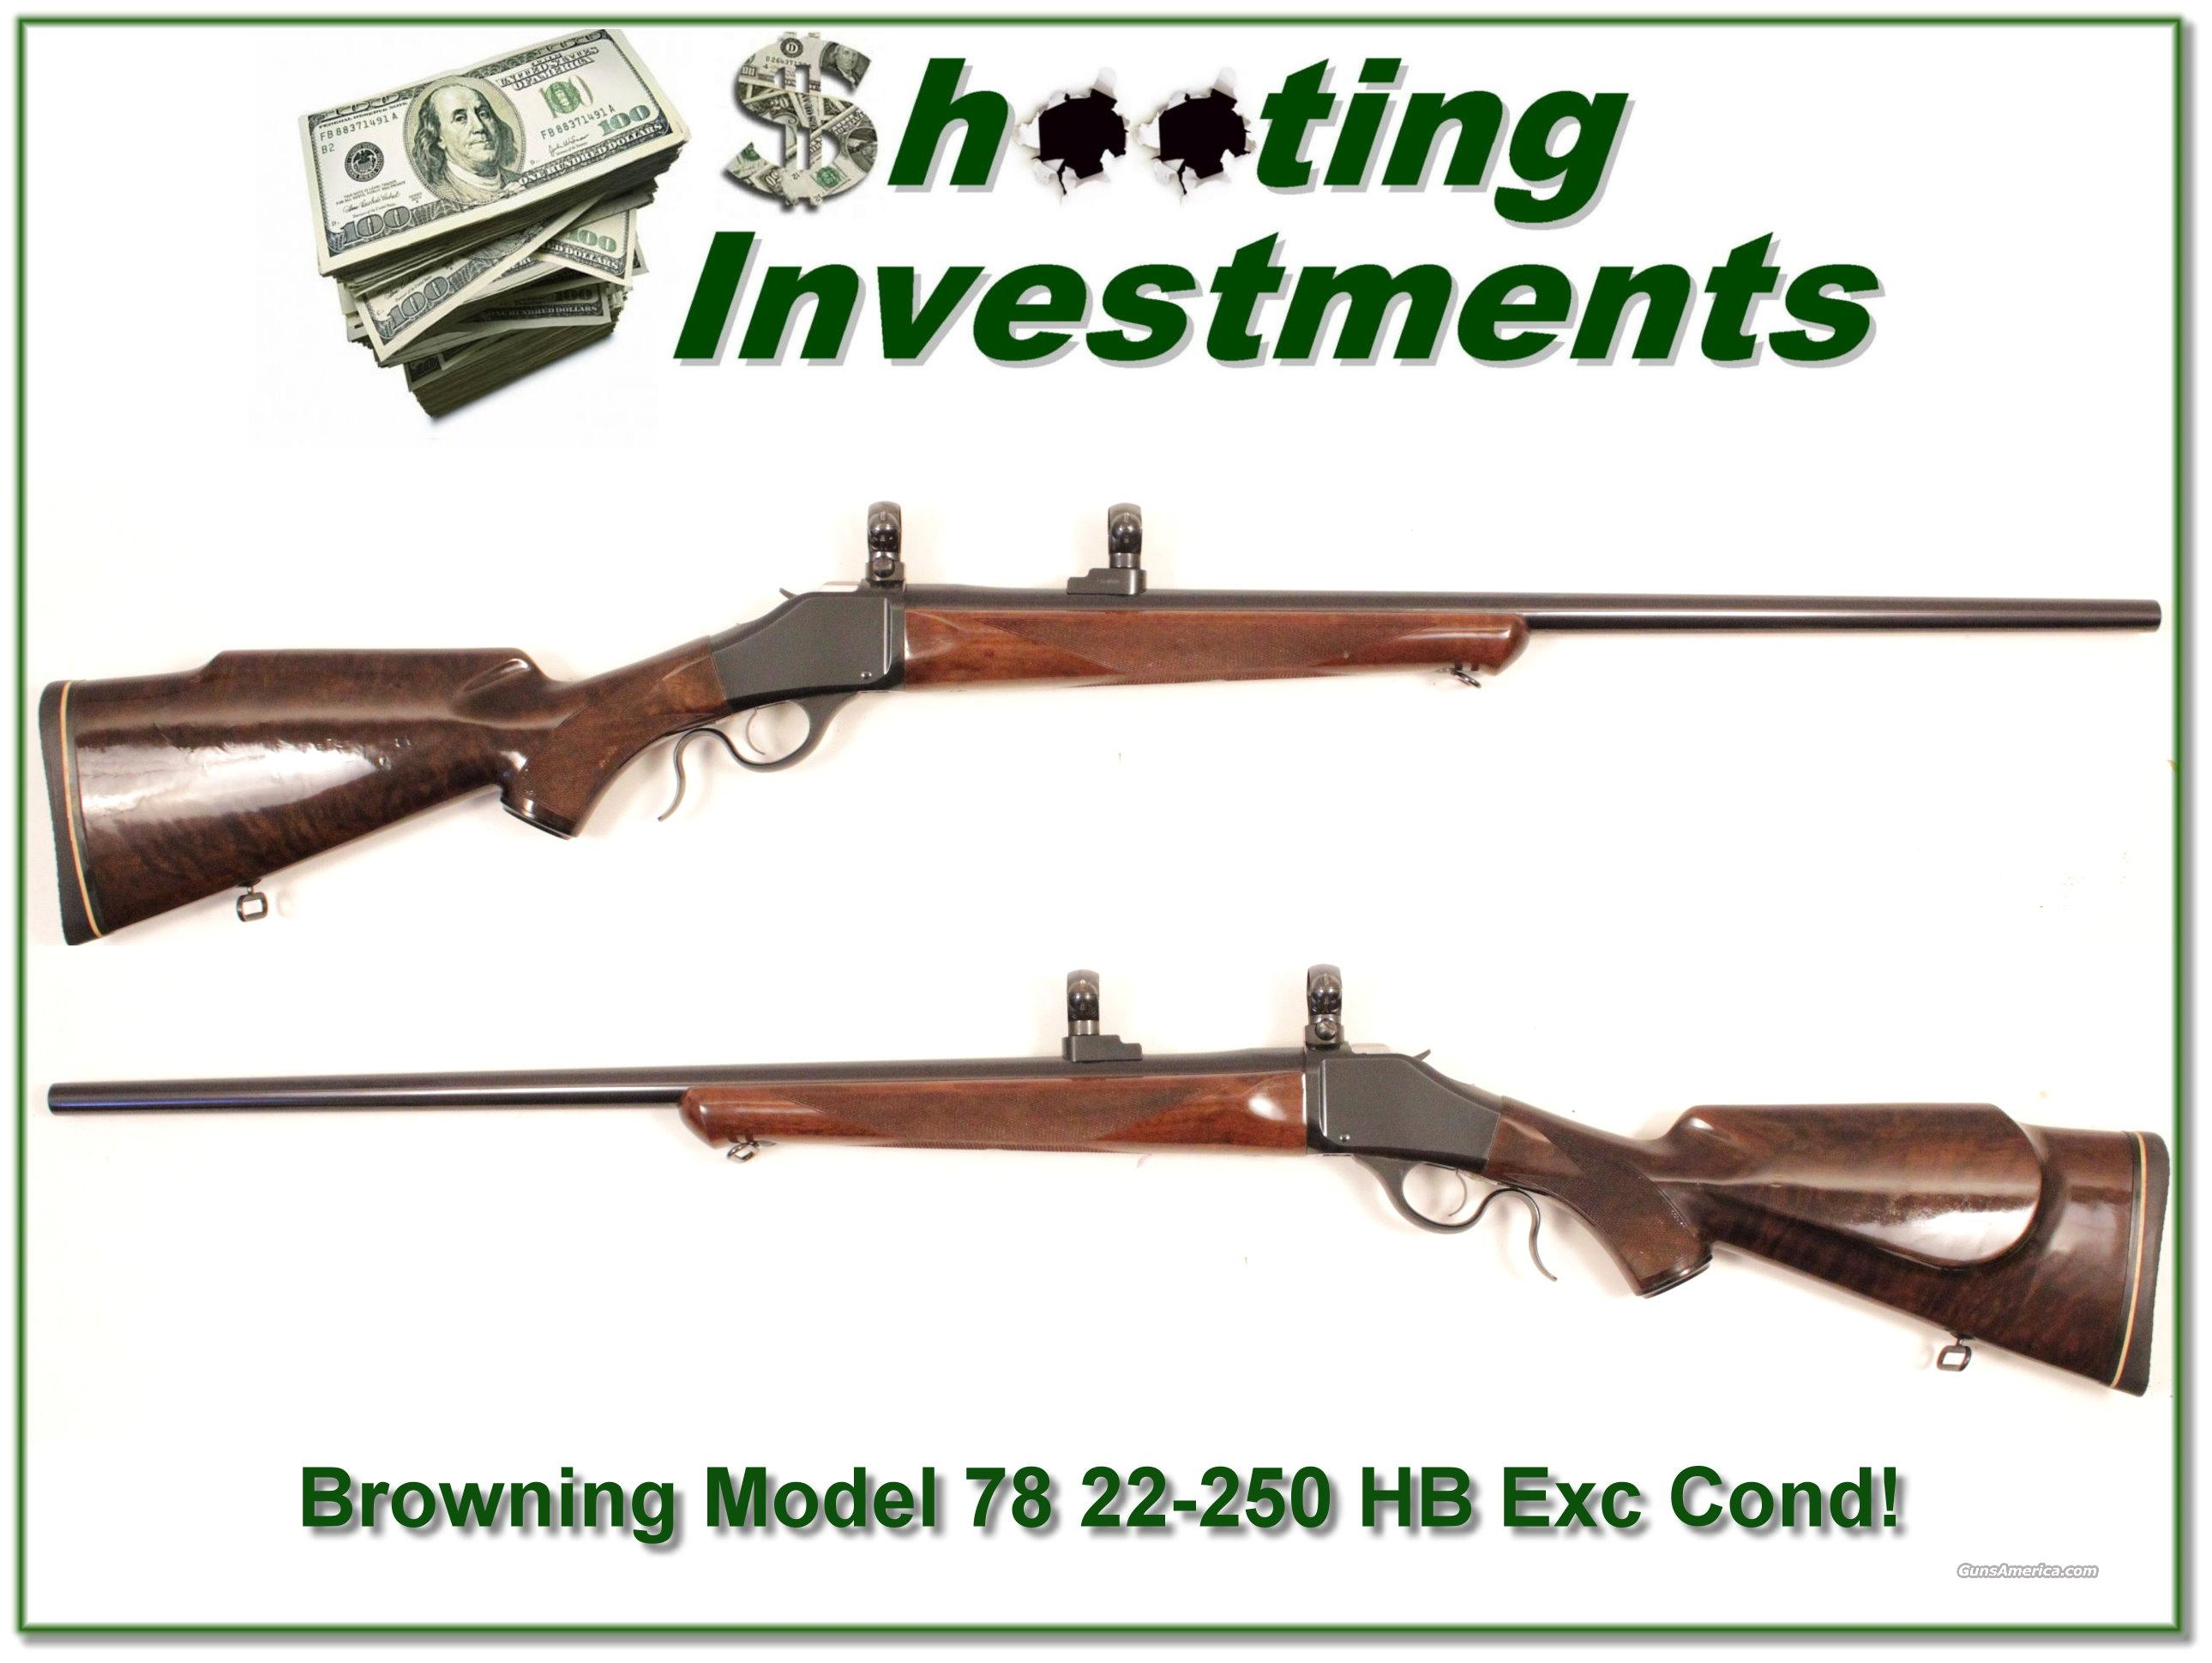 Browning Model 78 Heavy Barrel 22-250 Exc Cond!  Guns > Rifles > Browning Rifles > Singe Shot